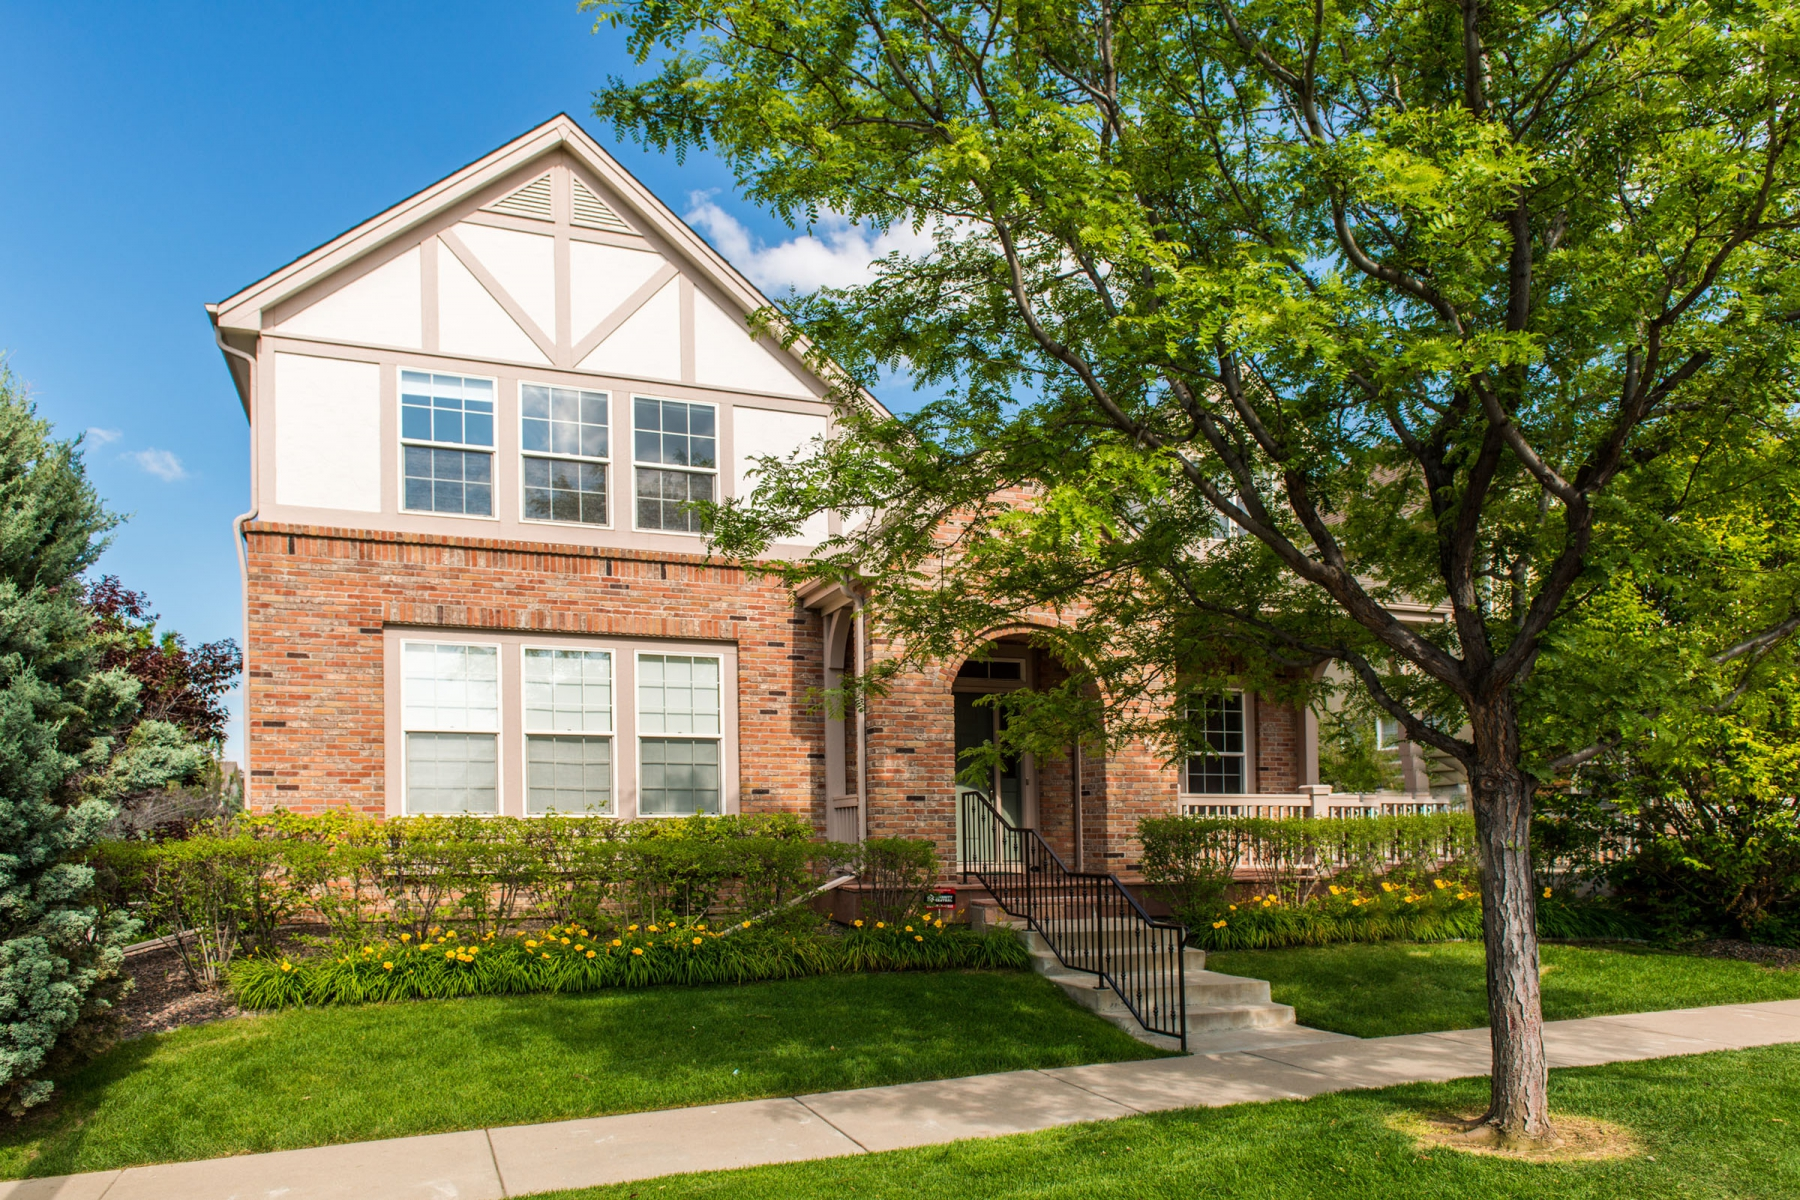 Single Family Home for Sale at 52 South Roslyn Street Denver, Colorado 80230 United States